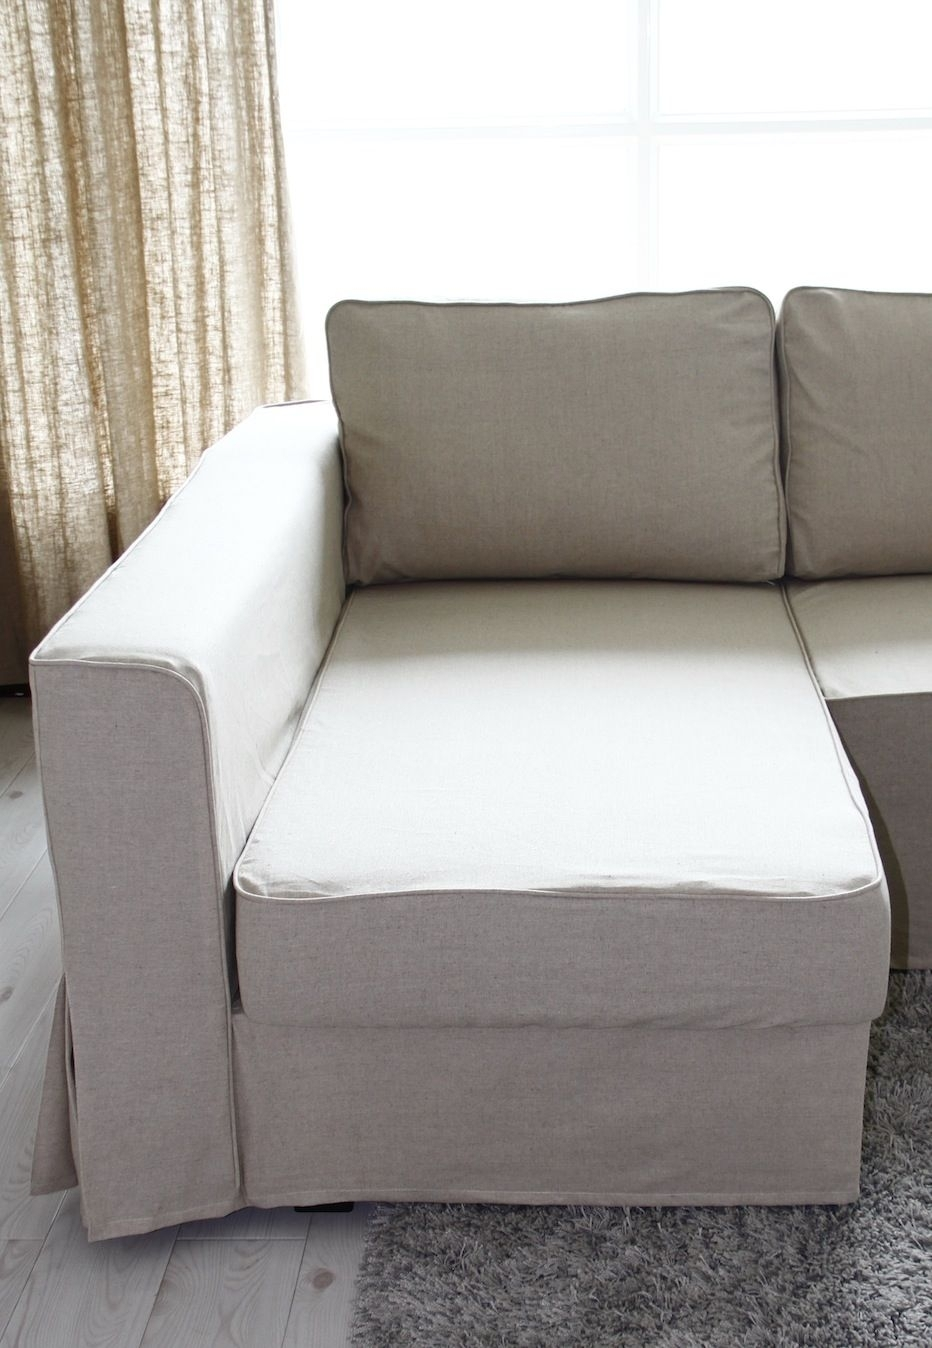 Loose Fit Linen Manstad Sofa Slipcovers Now Available | Sofa in Manstad Sofas (Image 6 of 10)